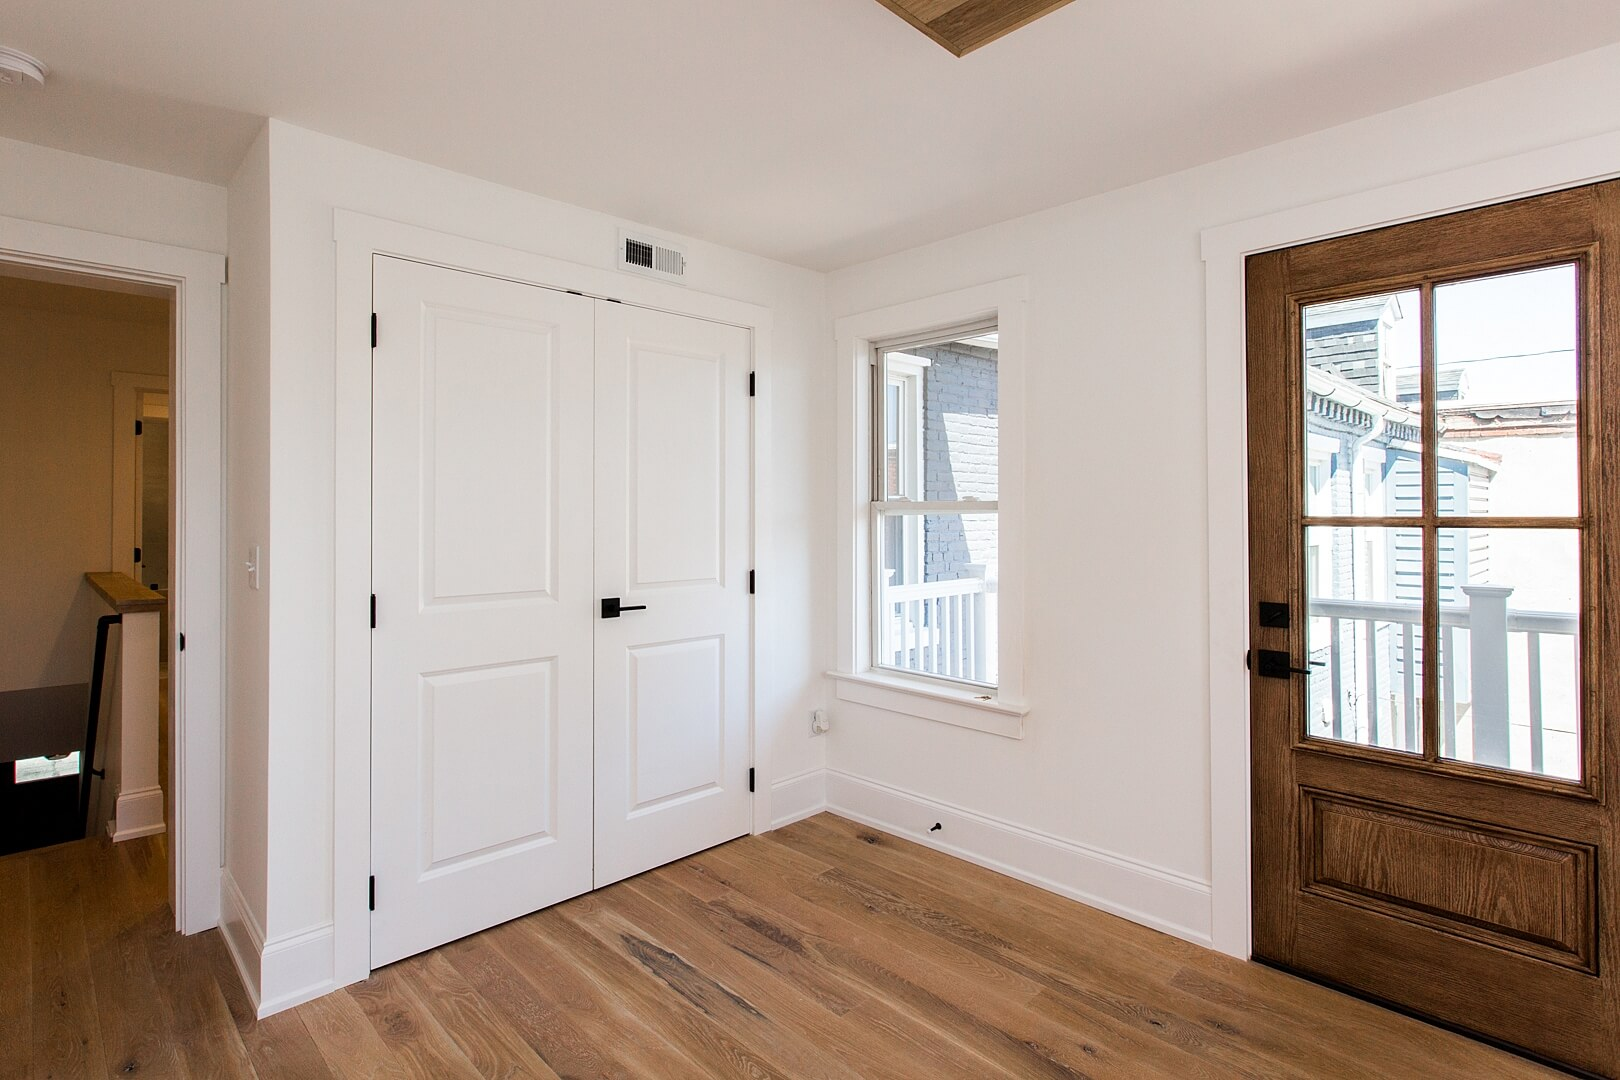 Entryway in a house with white oak flooring finished with matte floor finish.